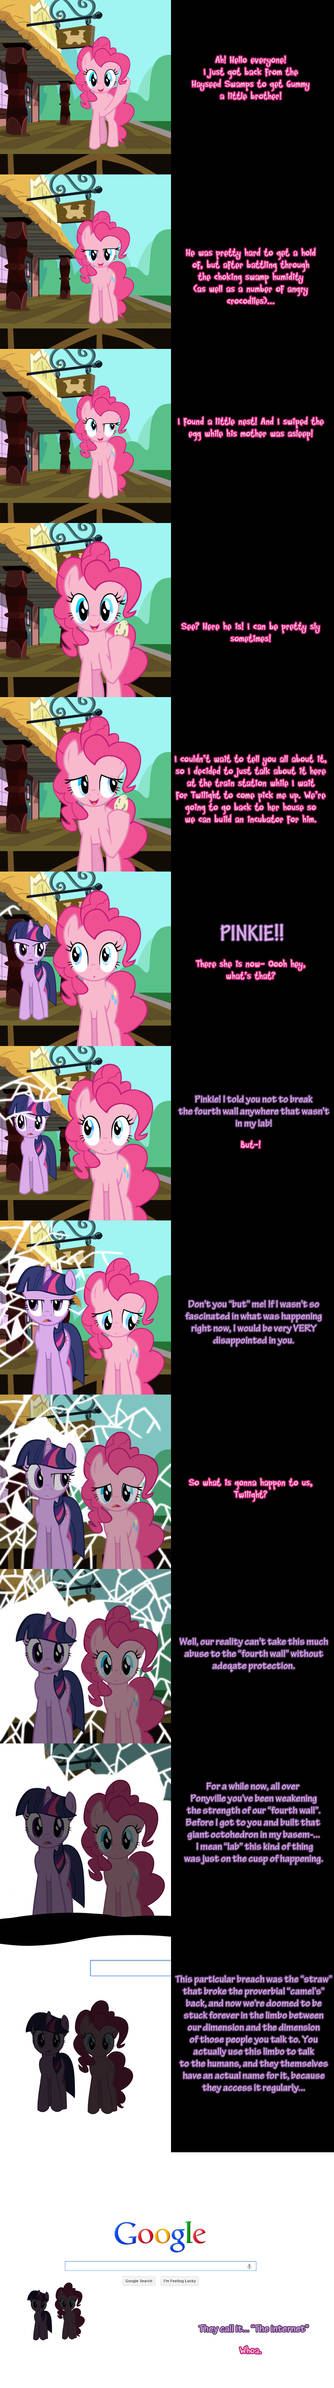 Pinkie Pie Says--